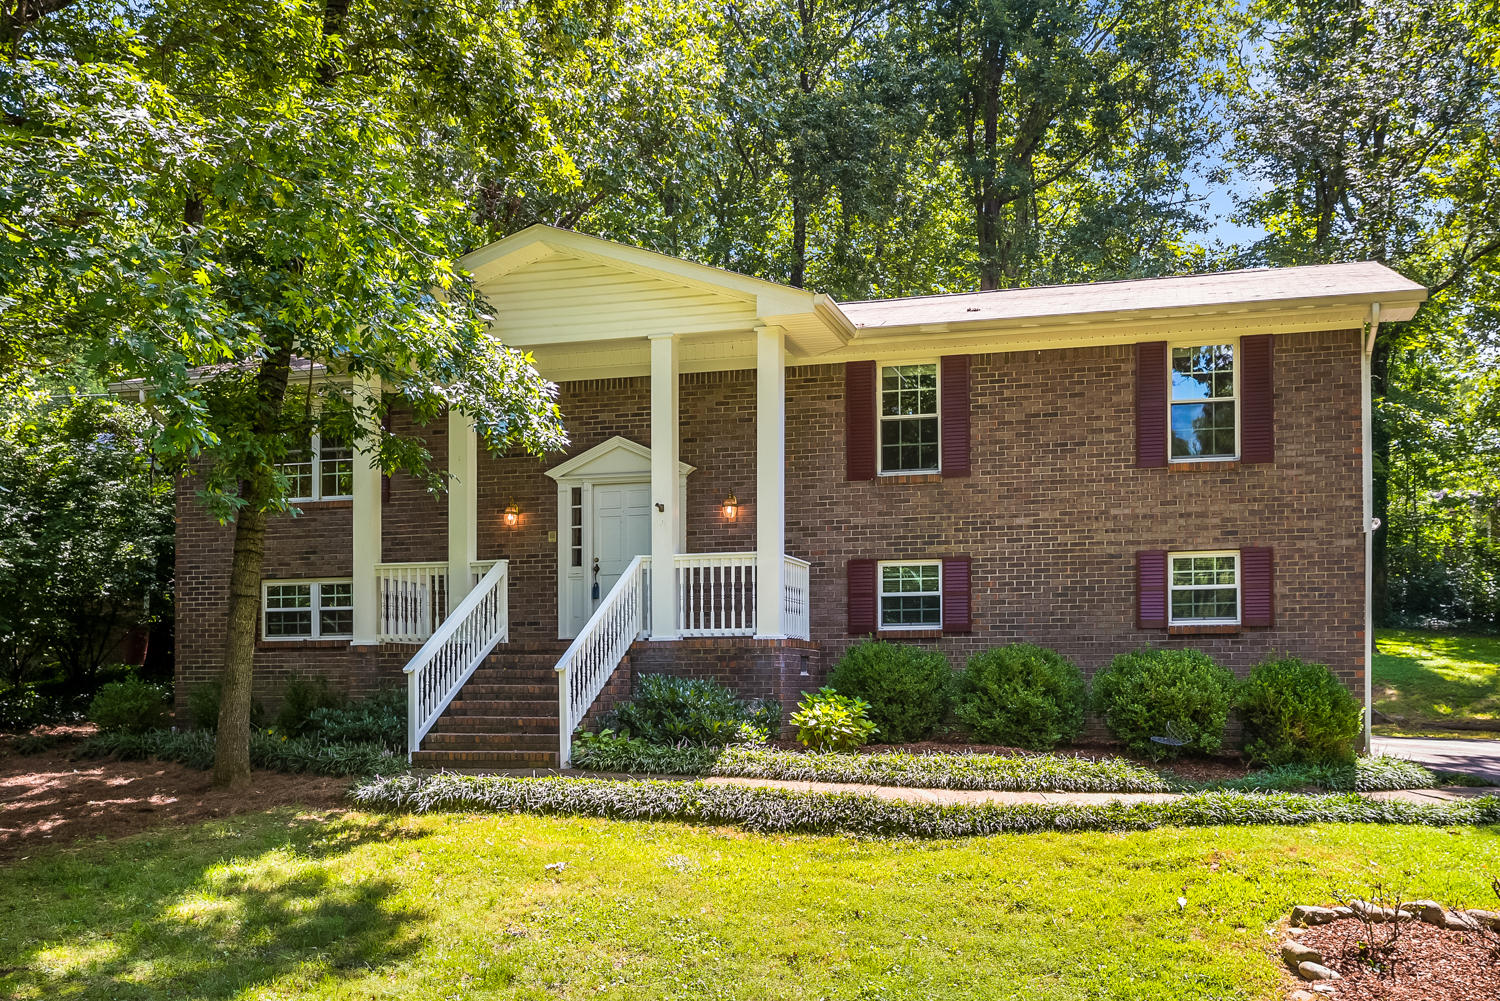 506 S Palisades Dr, Signal Mountain, TN 37377